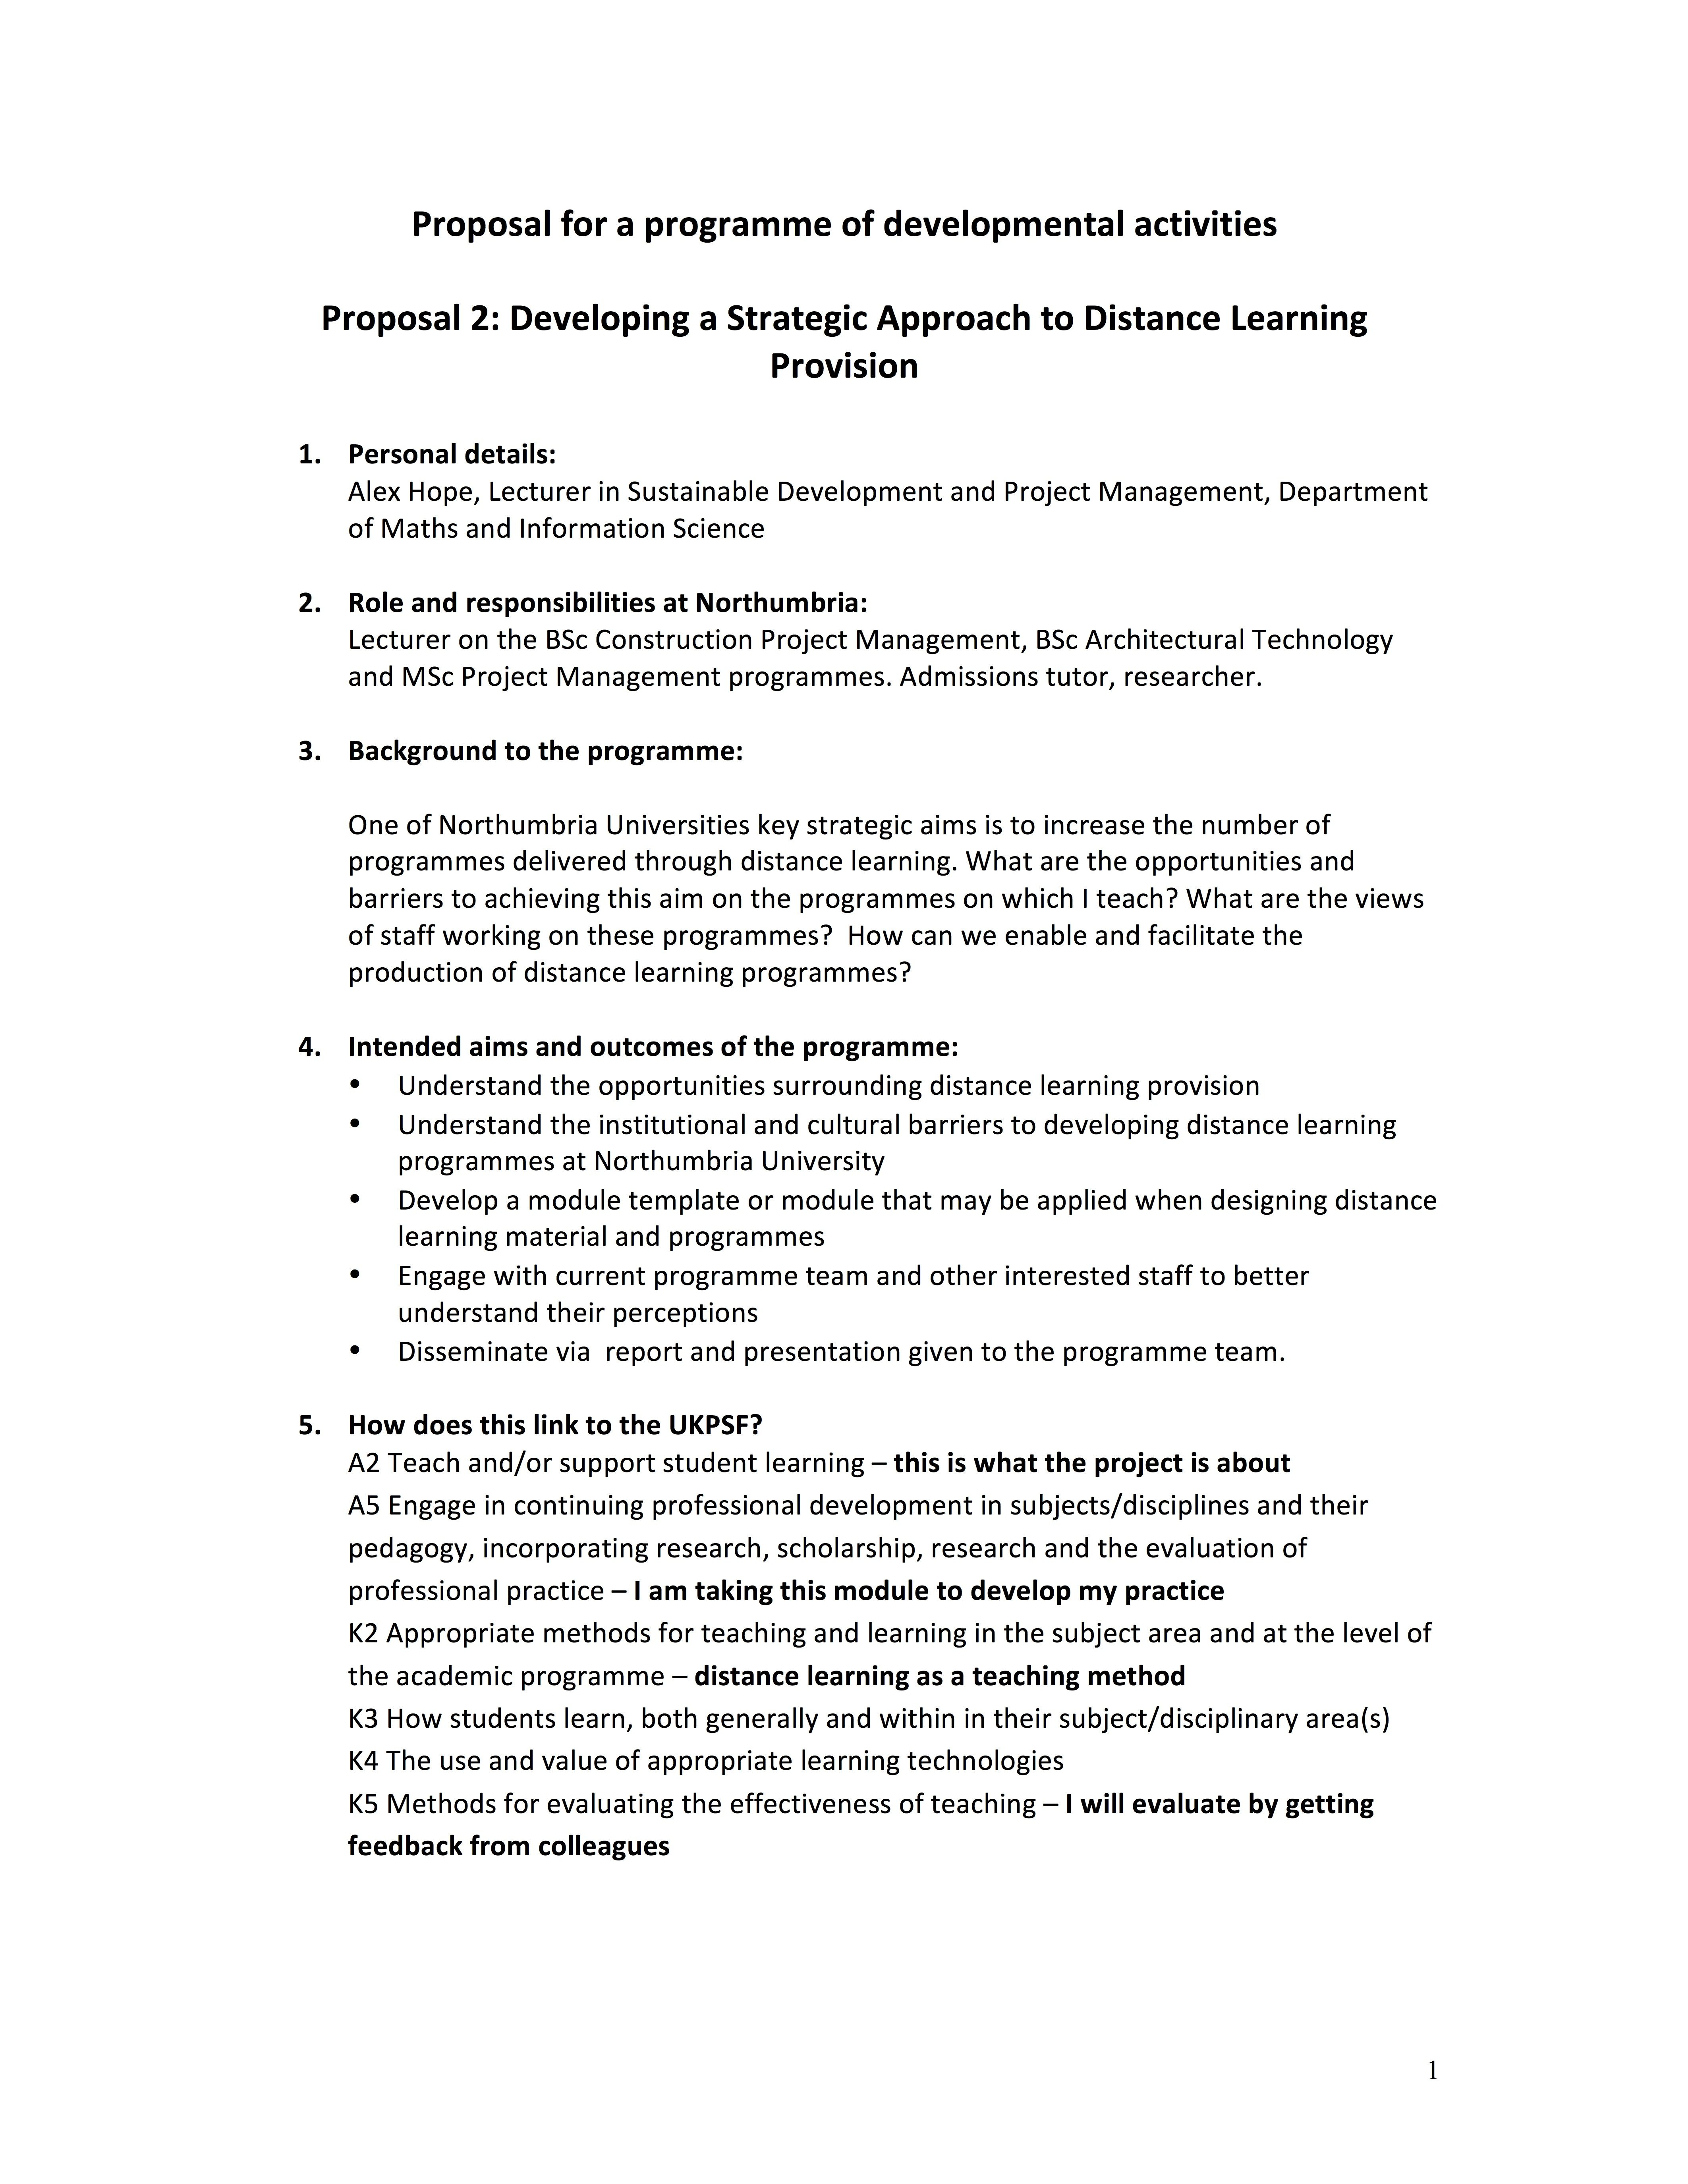 Proposal  Developing A Strategic Approach To Distance Learning